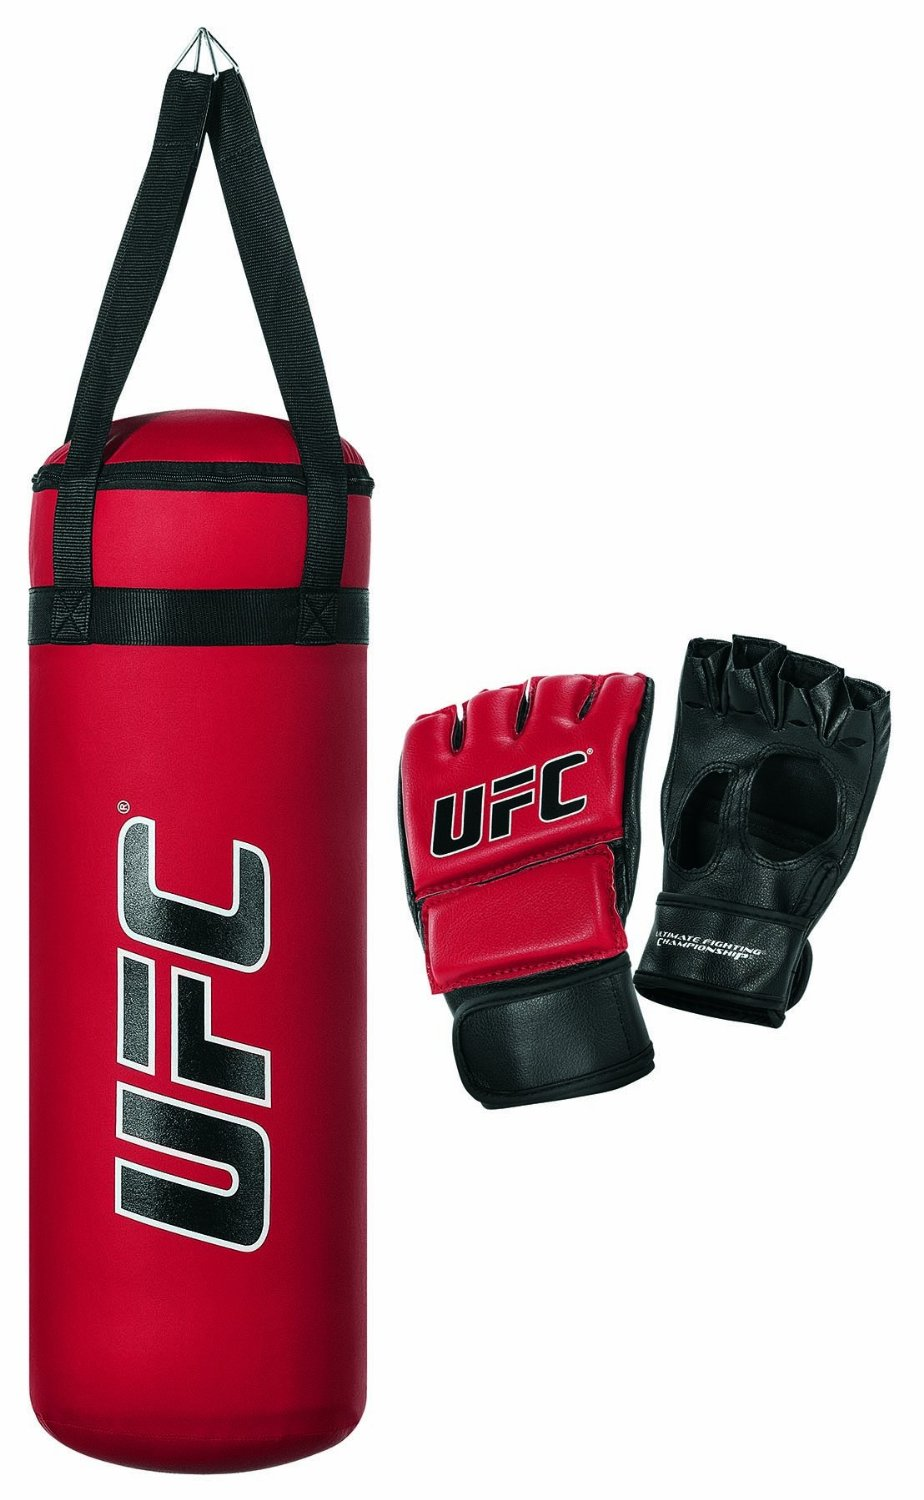 UFC Youth Training Bag Set